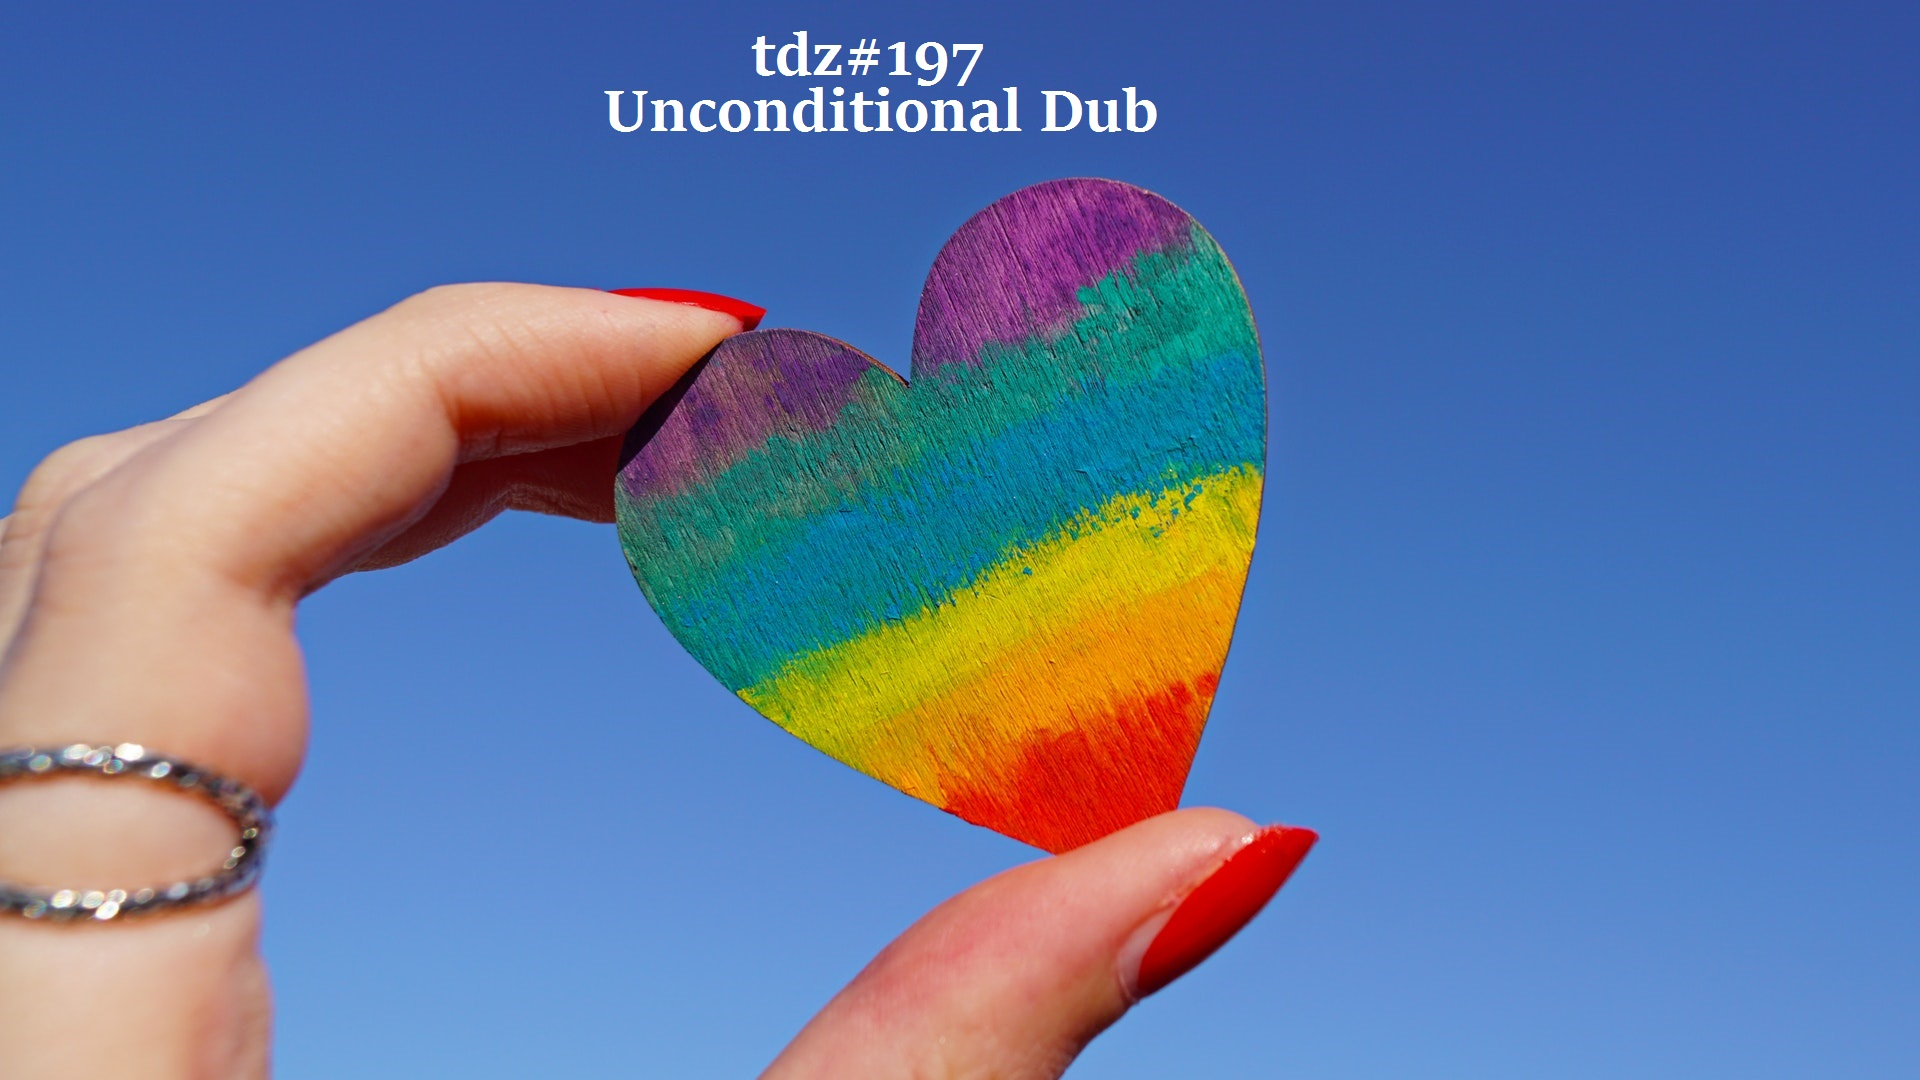 TDZ#197... Unconditional Dub.....